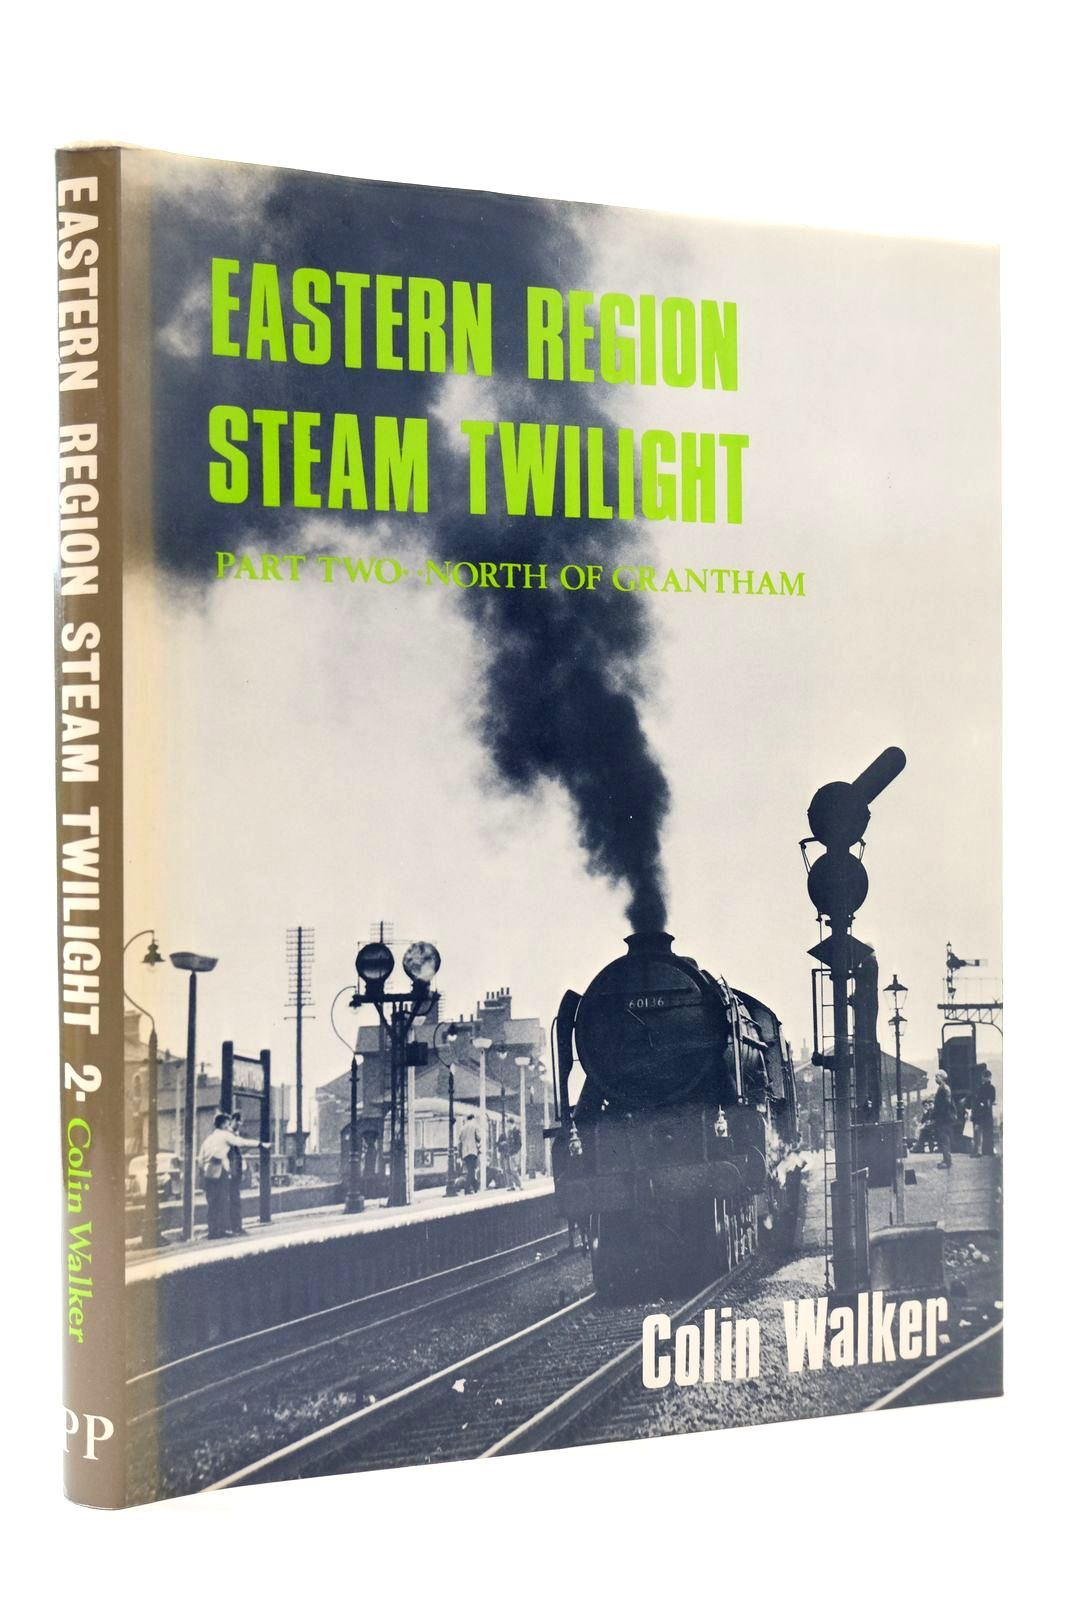 Photo of EASTERN REGION STEAM TWILIGHT PART TWO: NORTH OF GRANTHAM written by Walker, Colin published by Pendyke Publications (STOCK CODE: 2131902)  for sale by Stella & Rose's Books